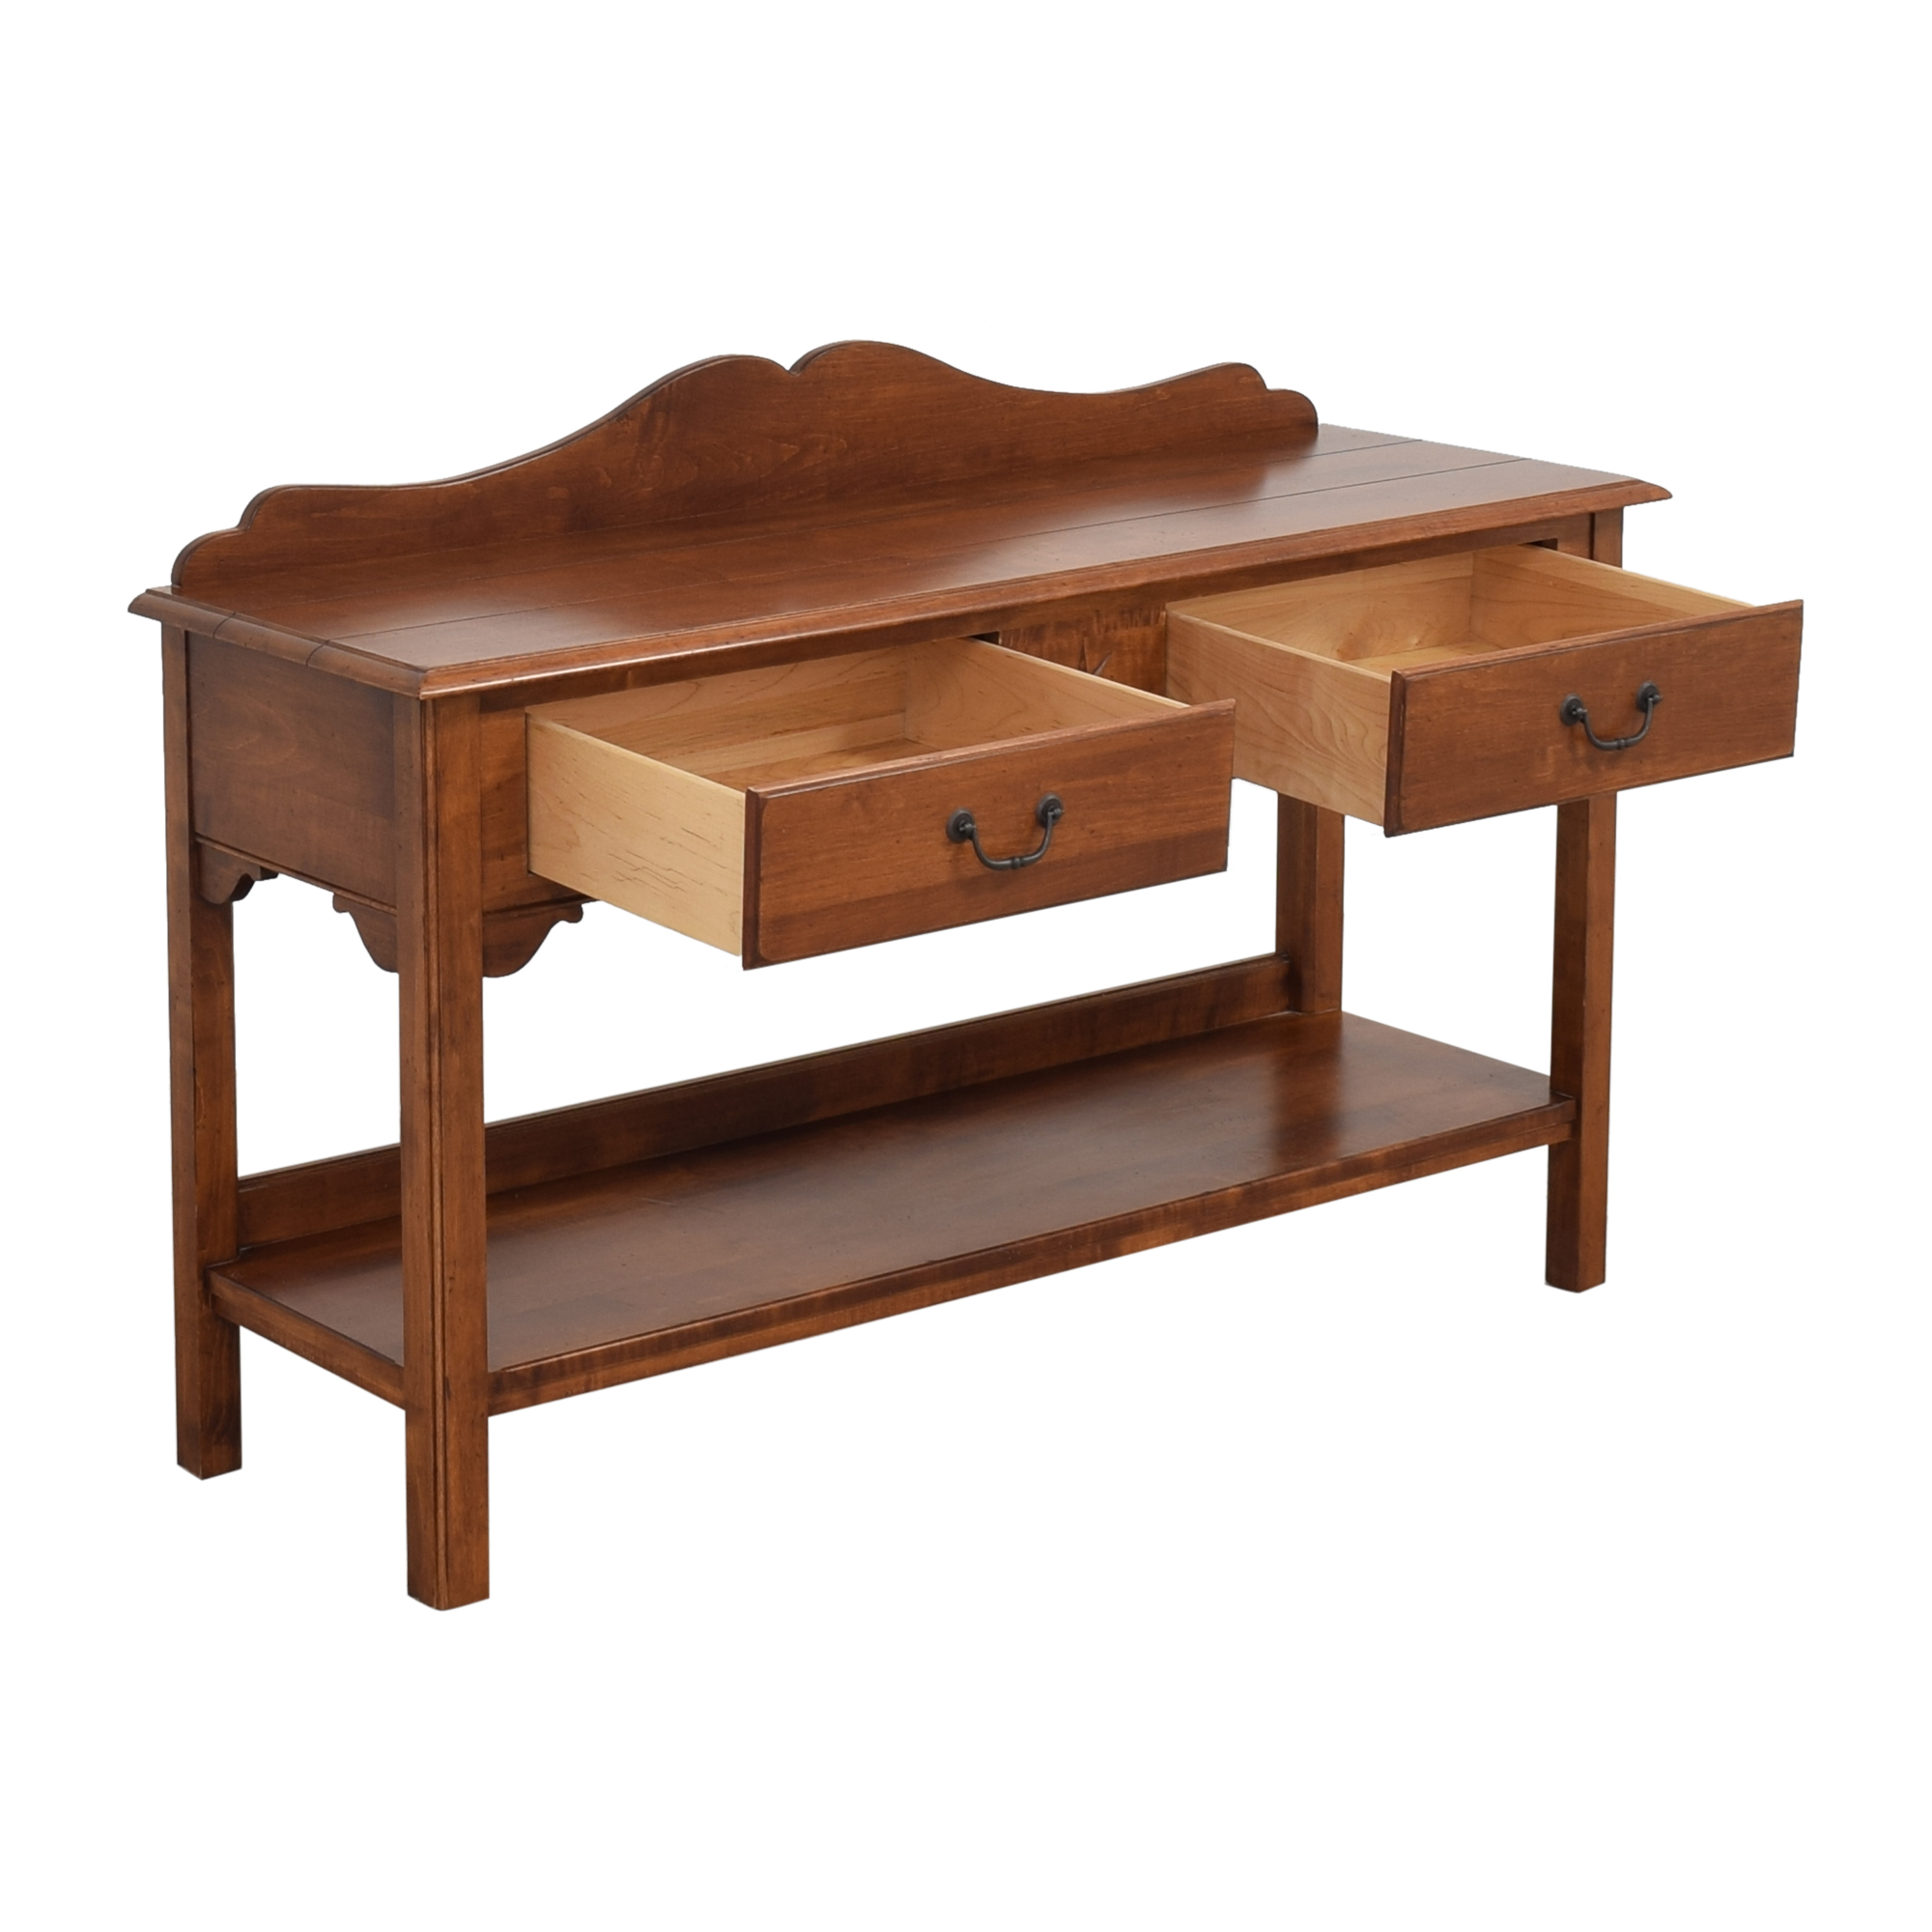 Ethan Allen Ethan Allen Country Crossing Console Table pa